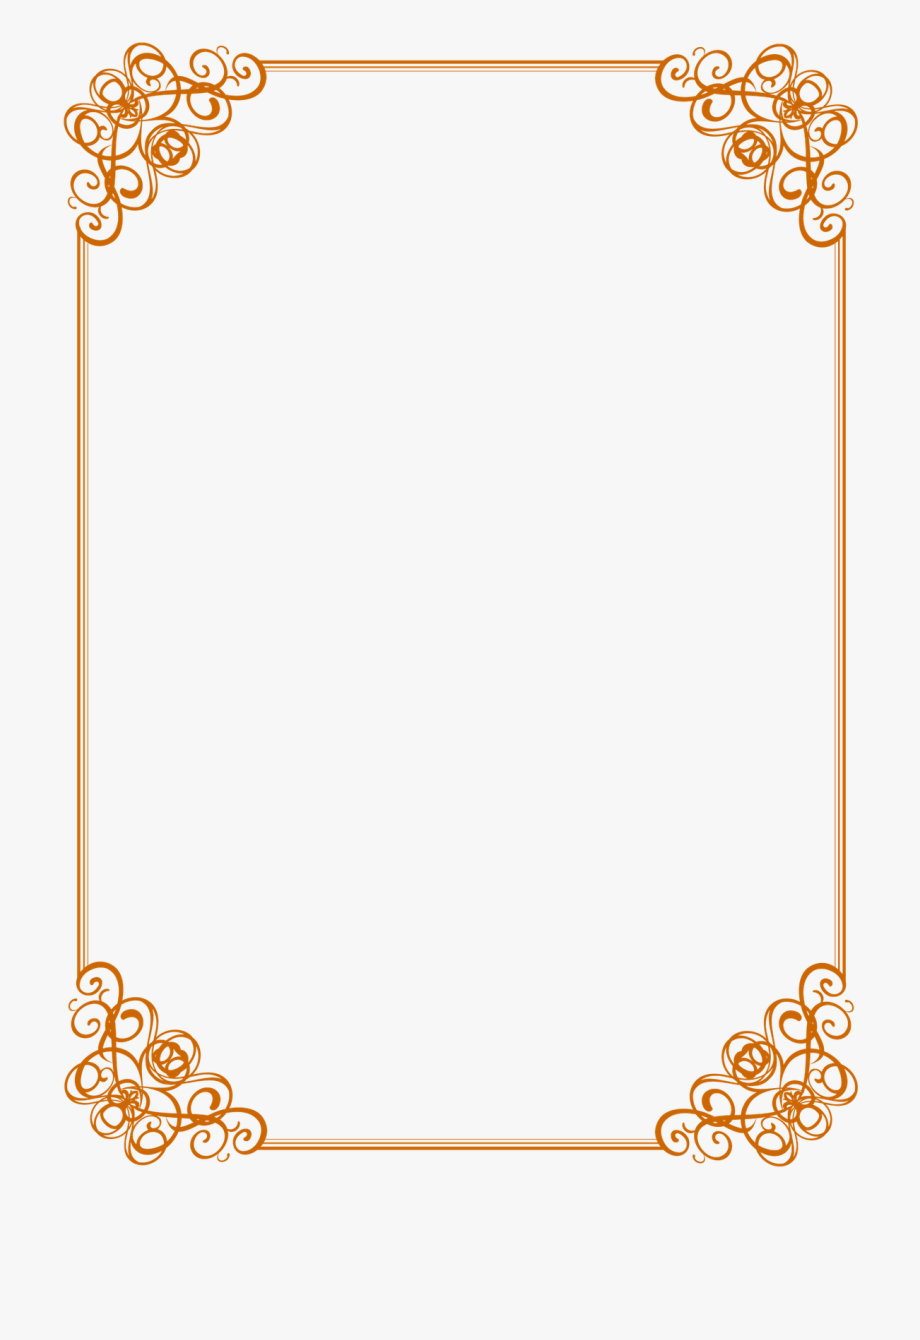 Birthday Borders Png.